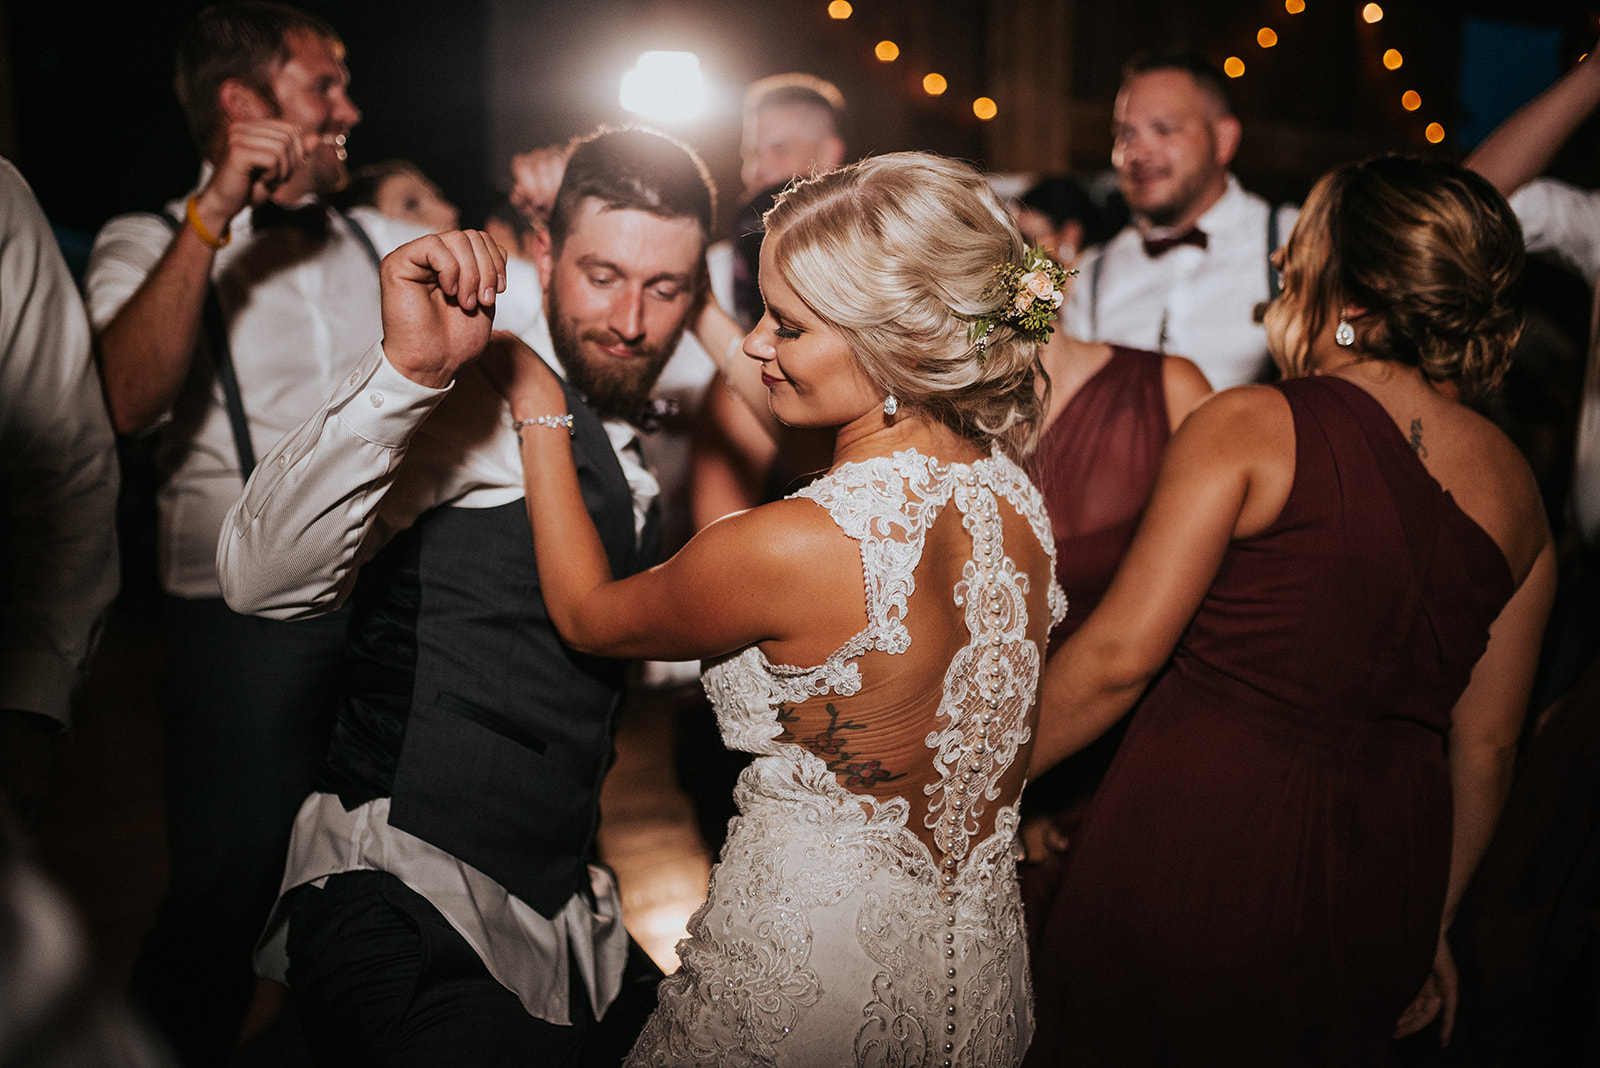 overthevineswisconsinwedding_1353.jpg